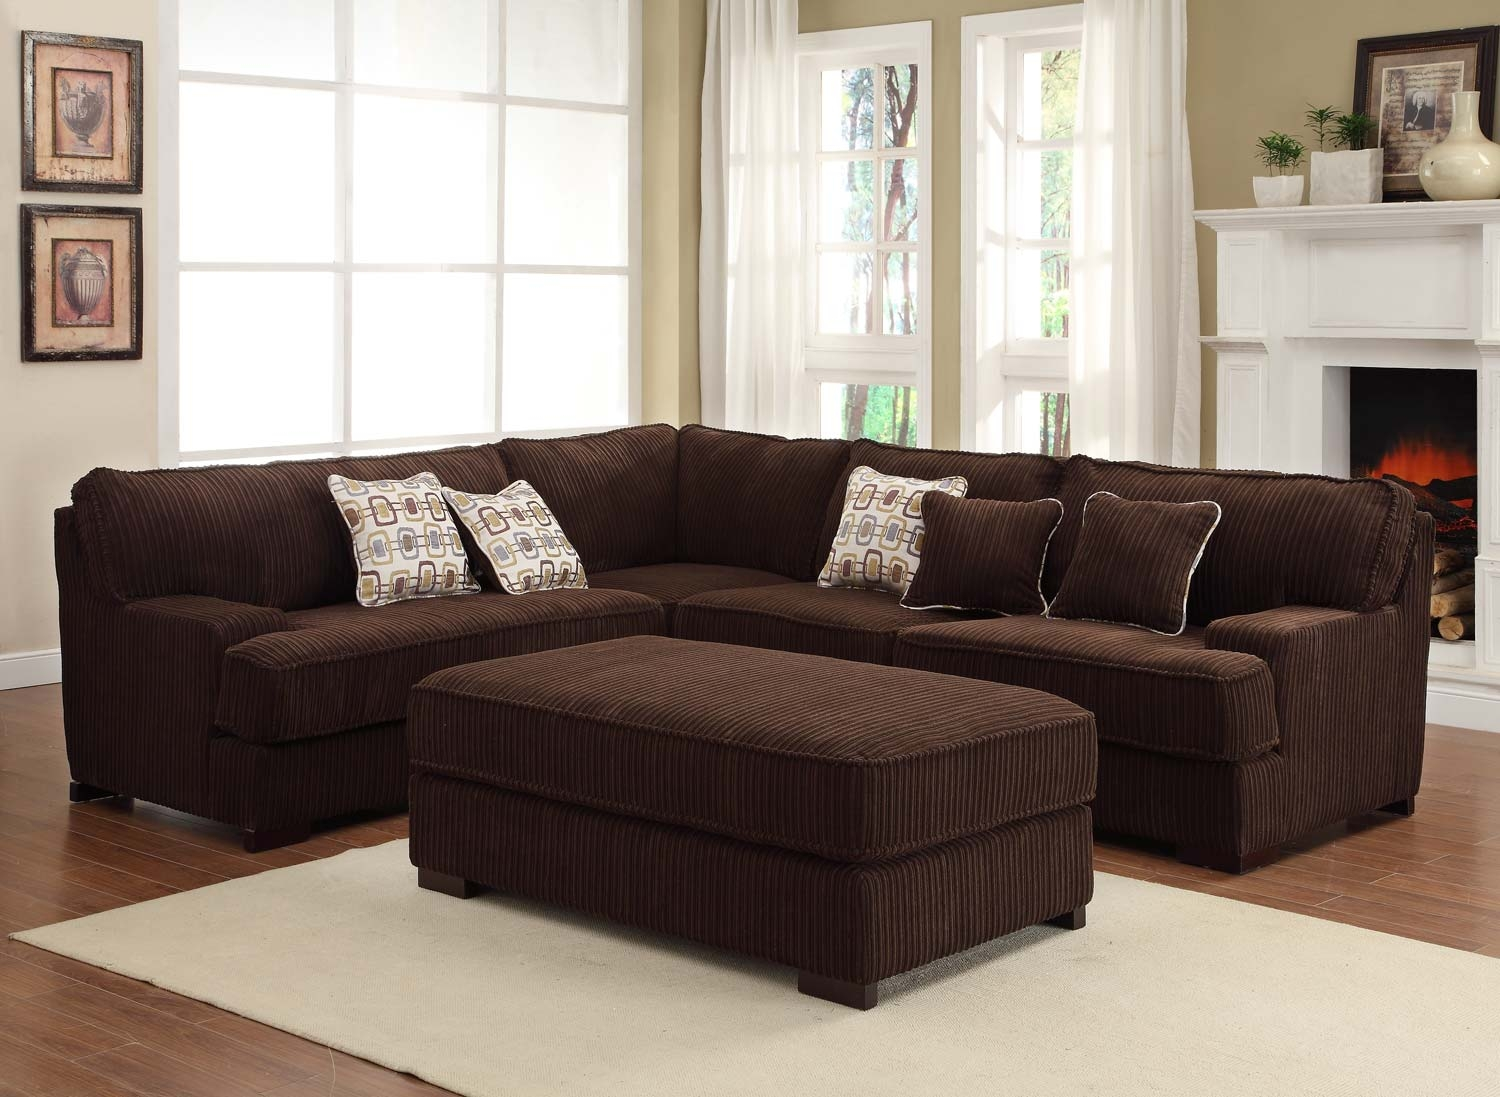 Chocolate brown sectional sofas living room found it at for Living room sectionals